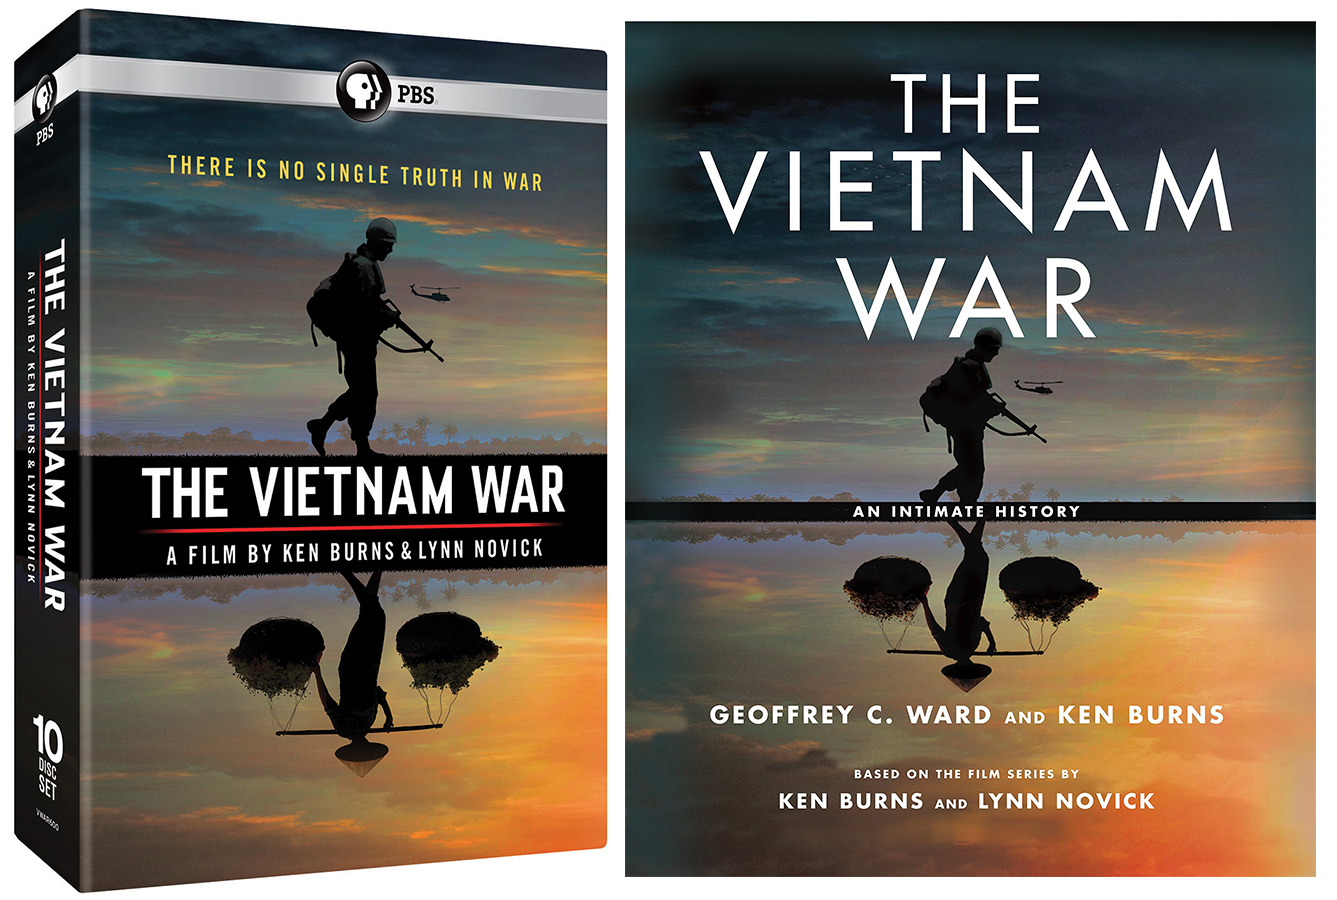 The Vietnam War DVD and Book